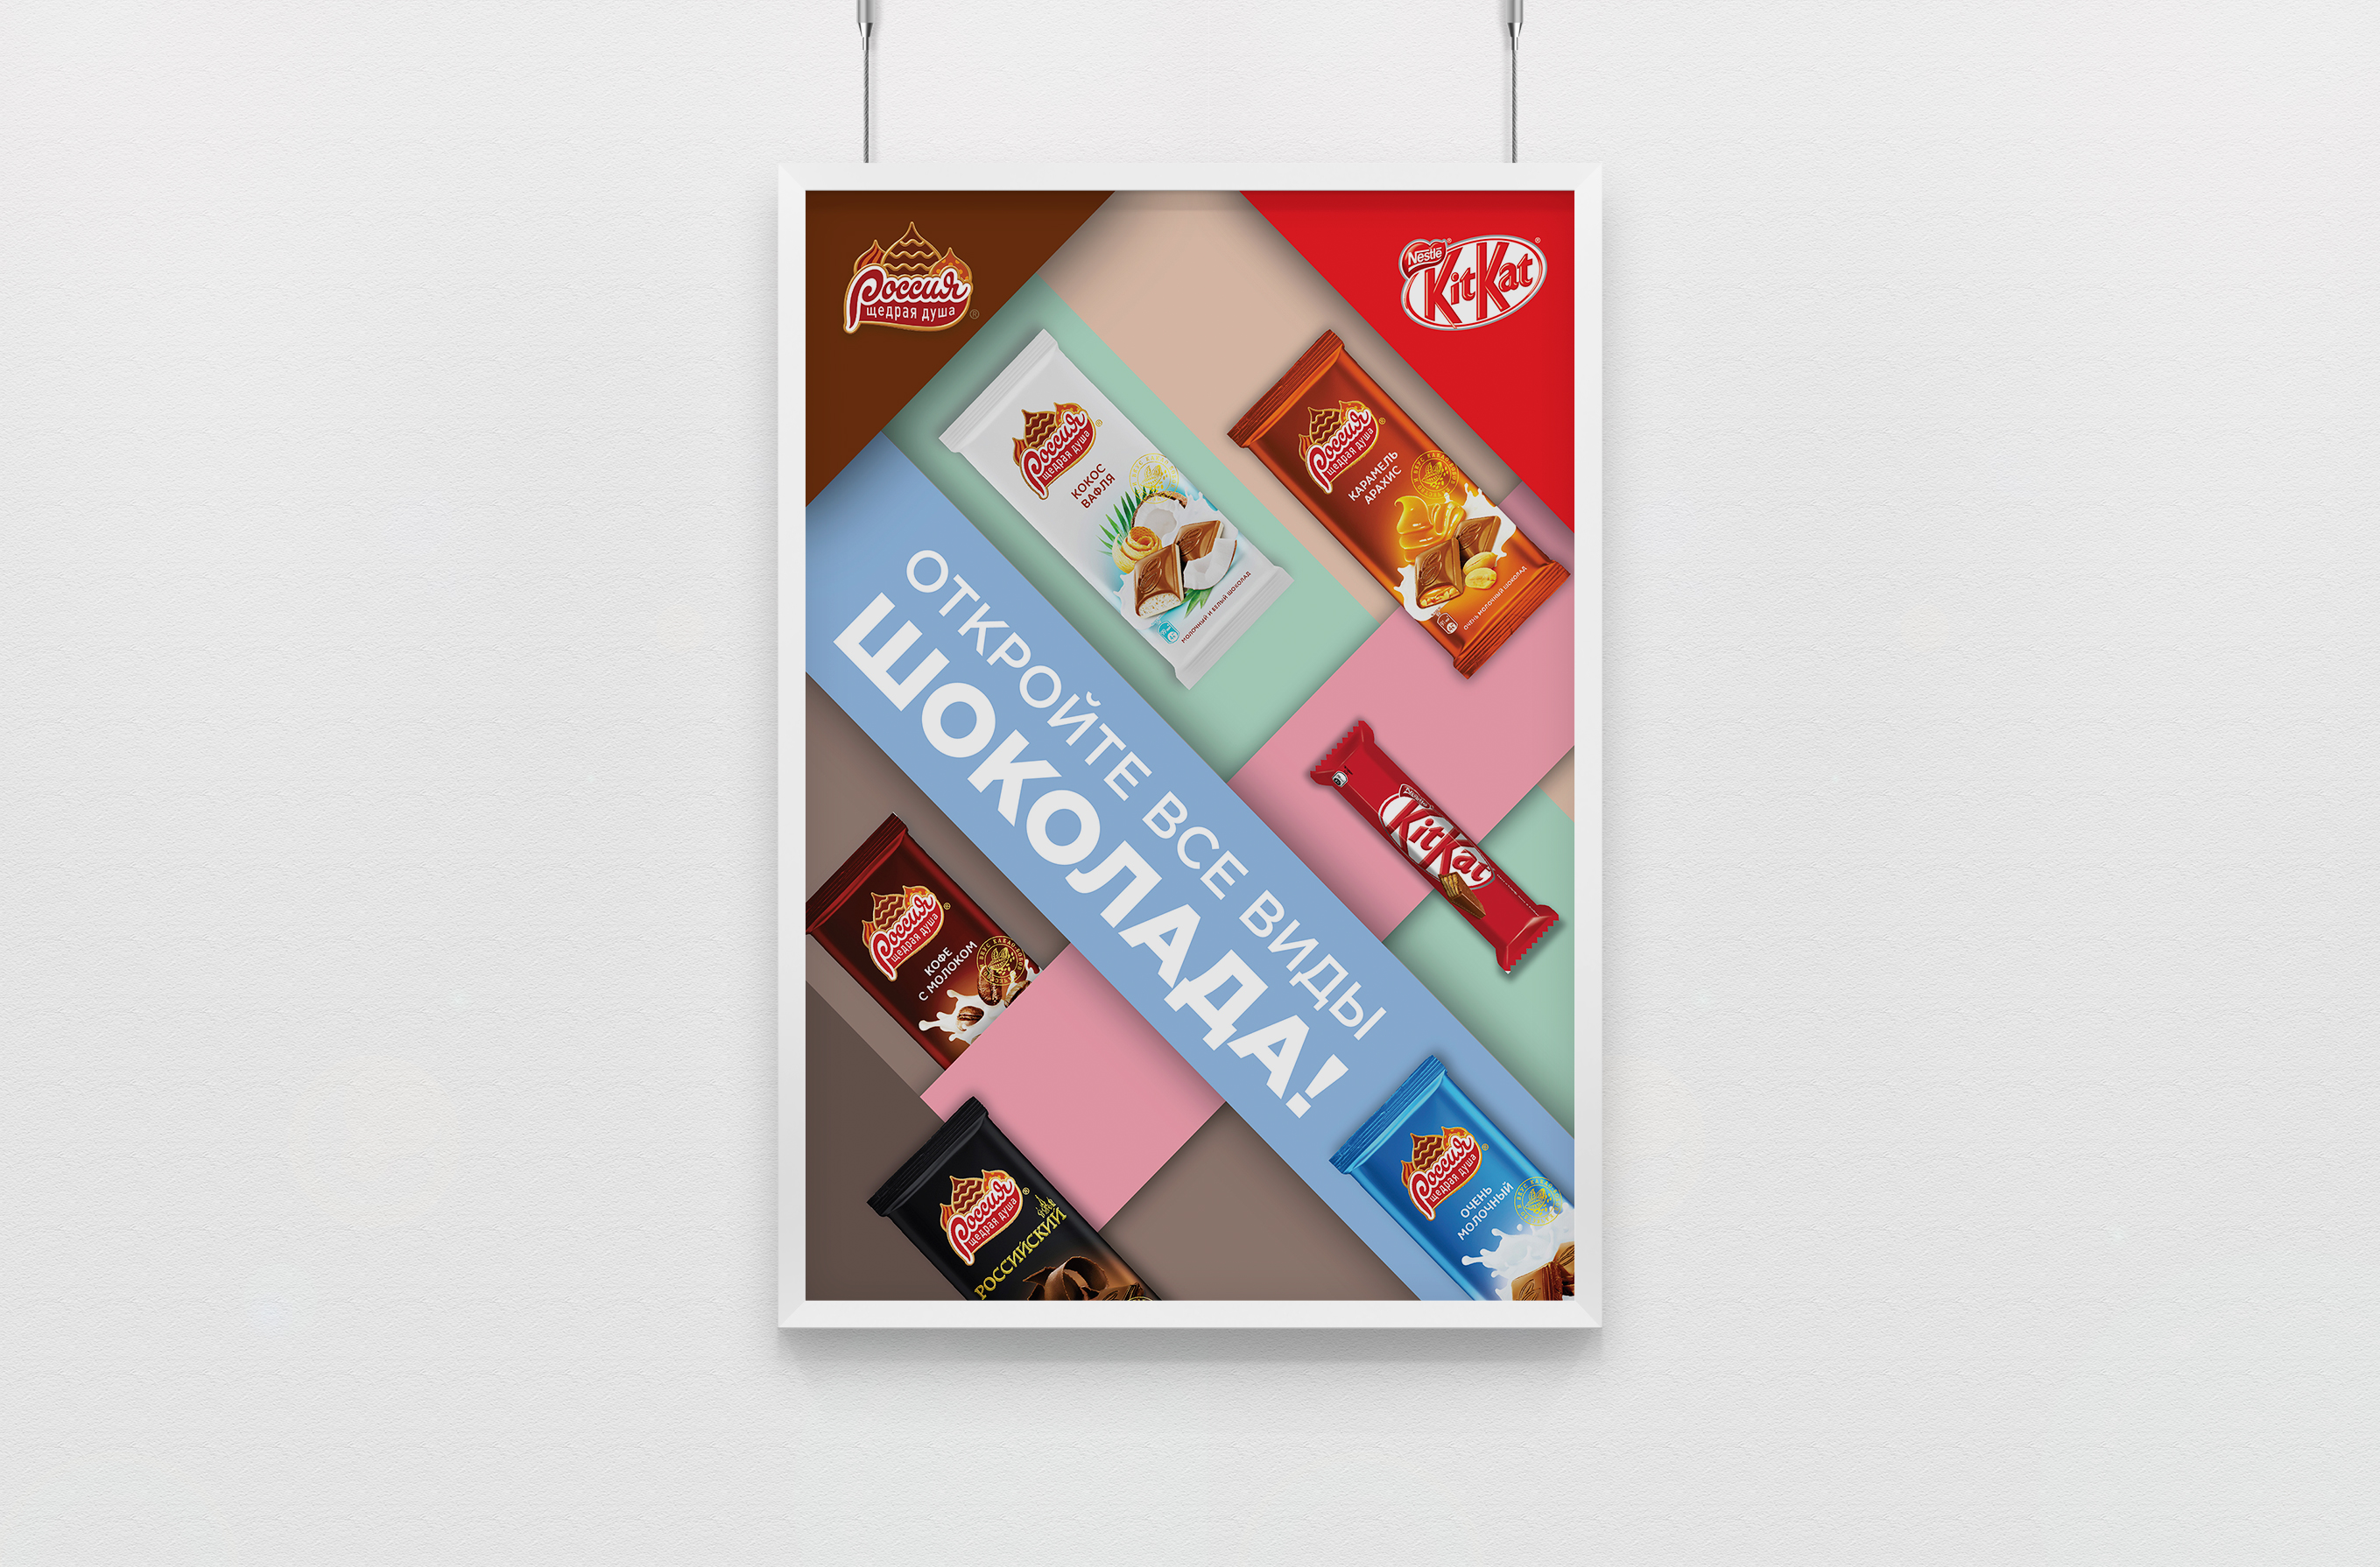 New_confectionery_RshD_Kitkat_v2_5